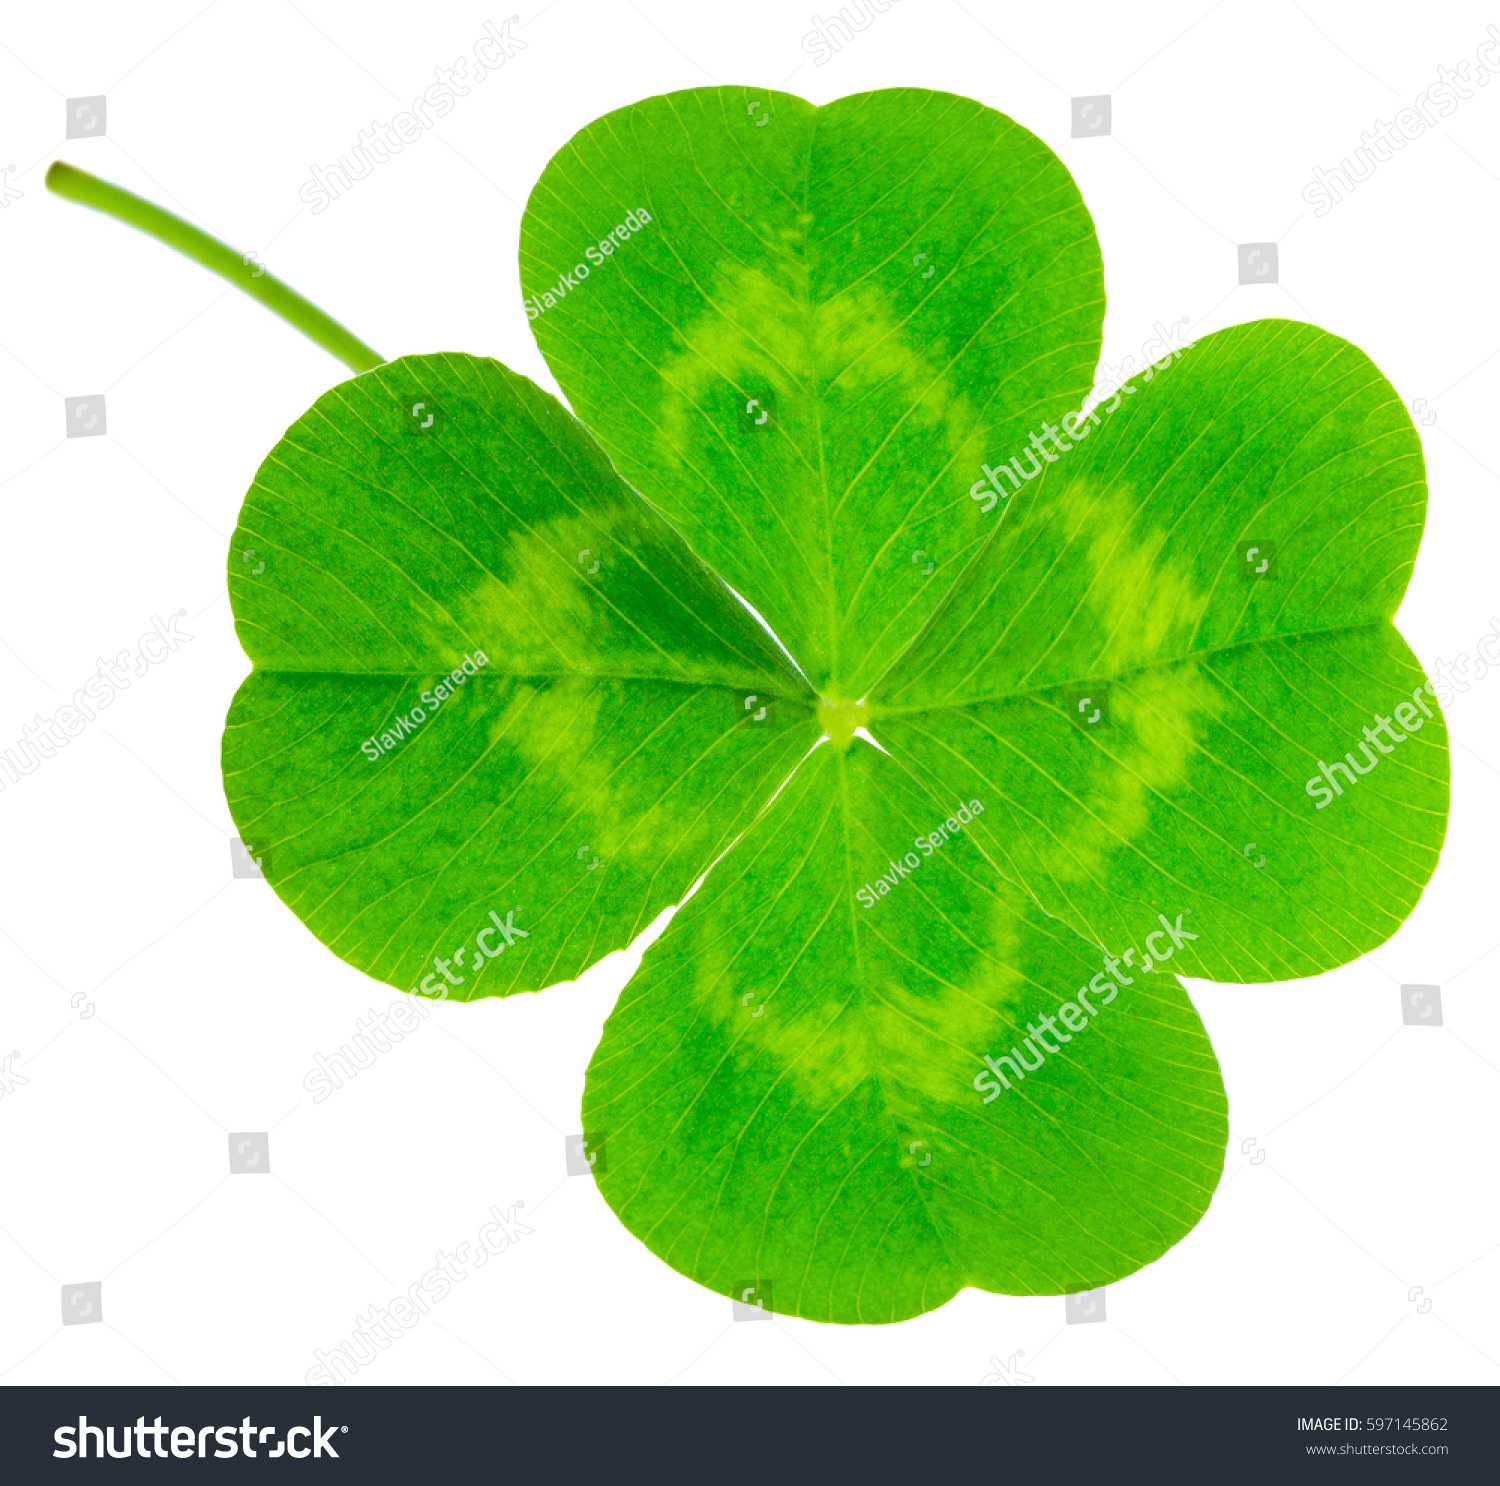 St patricks day symbol lucky shamrock stock photo 597145862 st patricks day symbol lucky shamrock clover green heart shaped leaves isolated on biocorpaavc Gallery